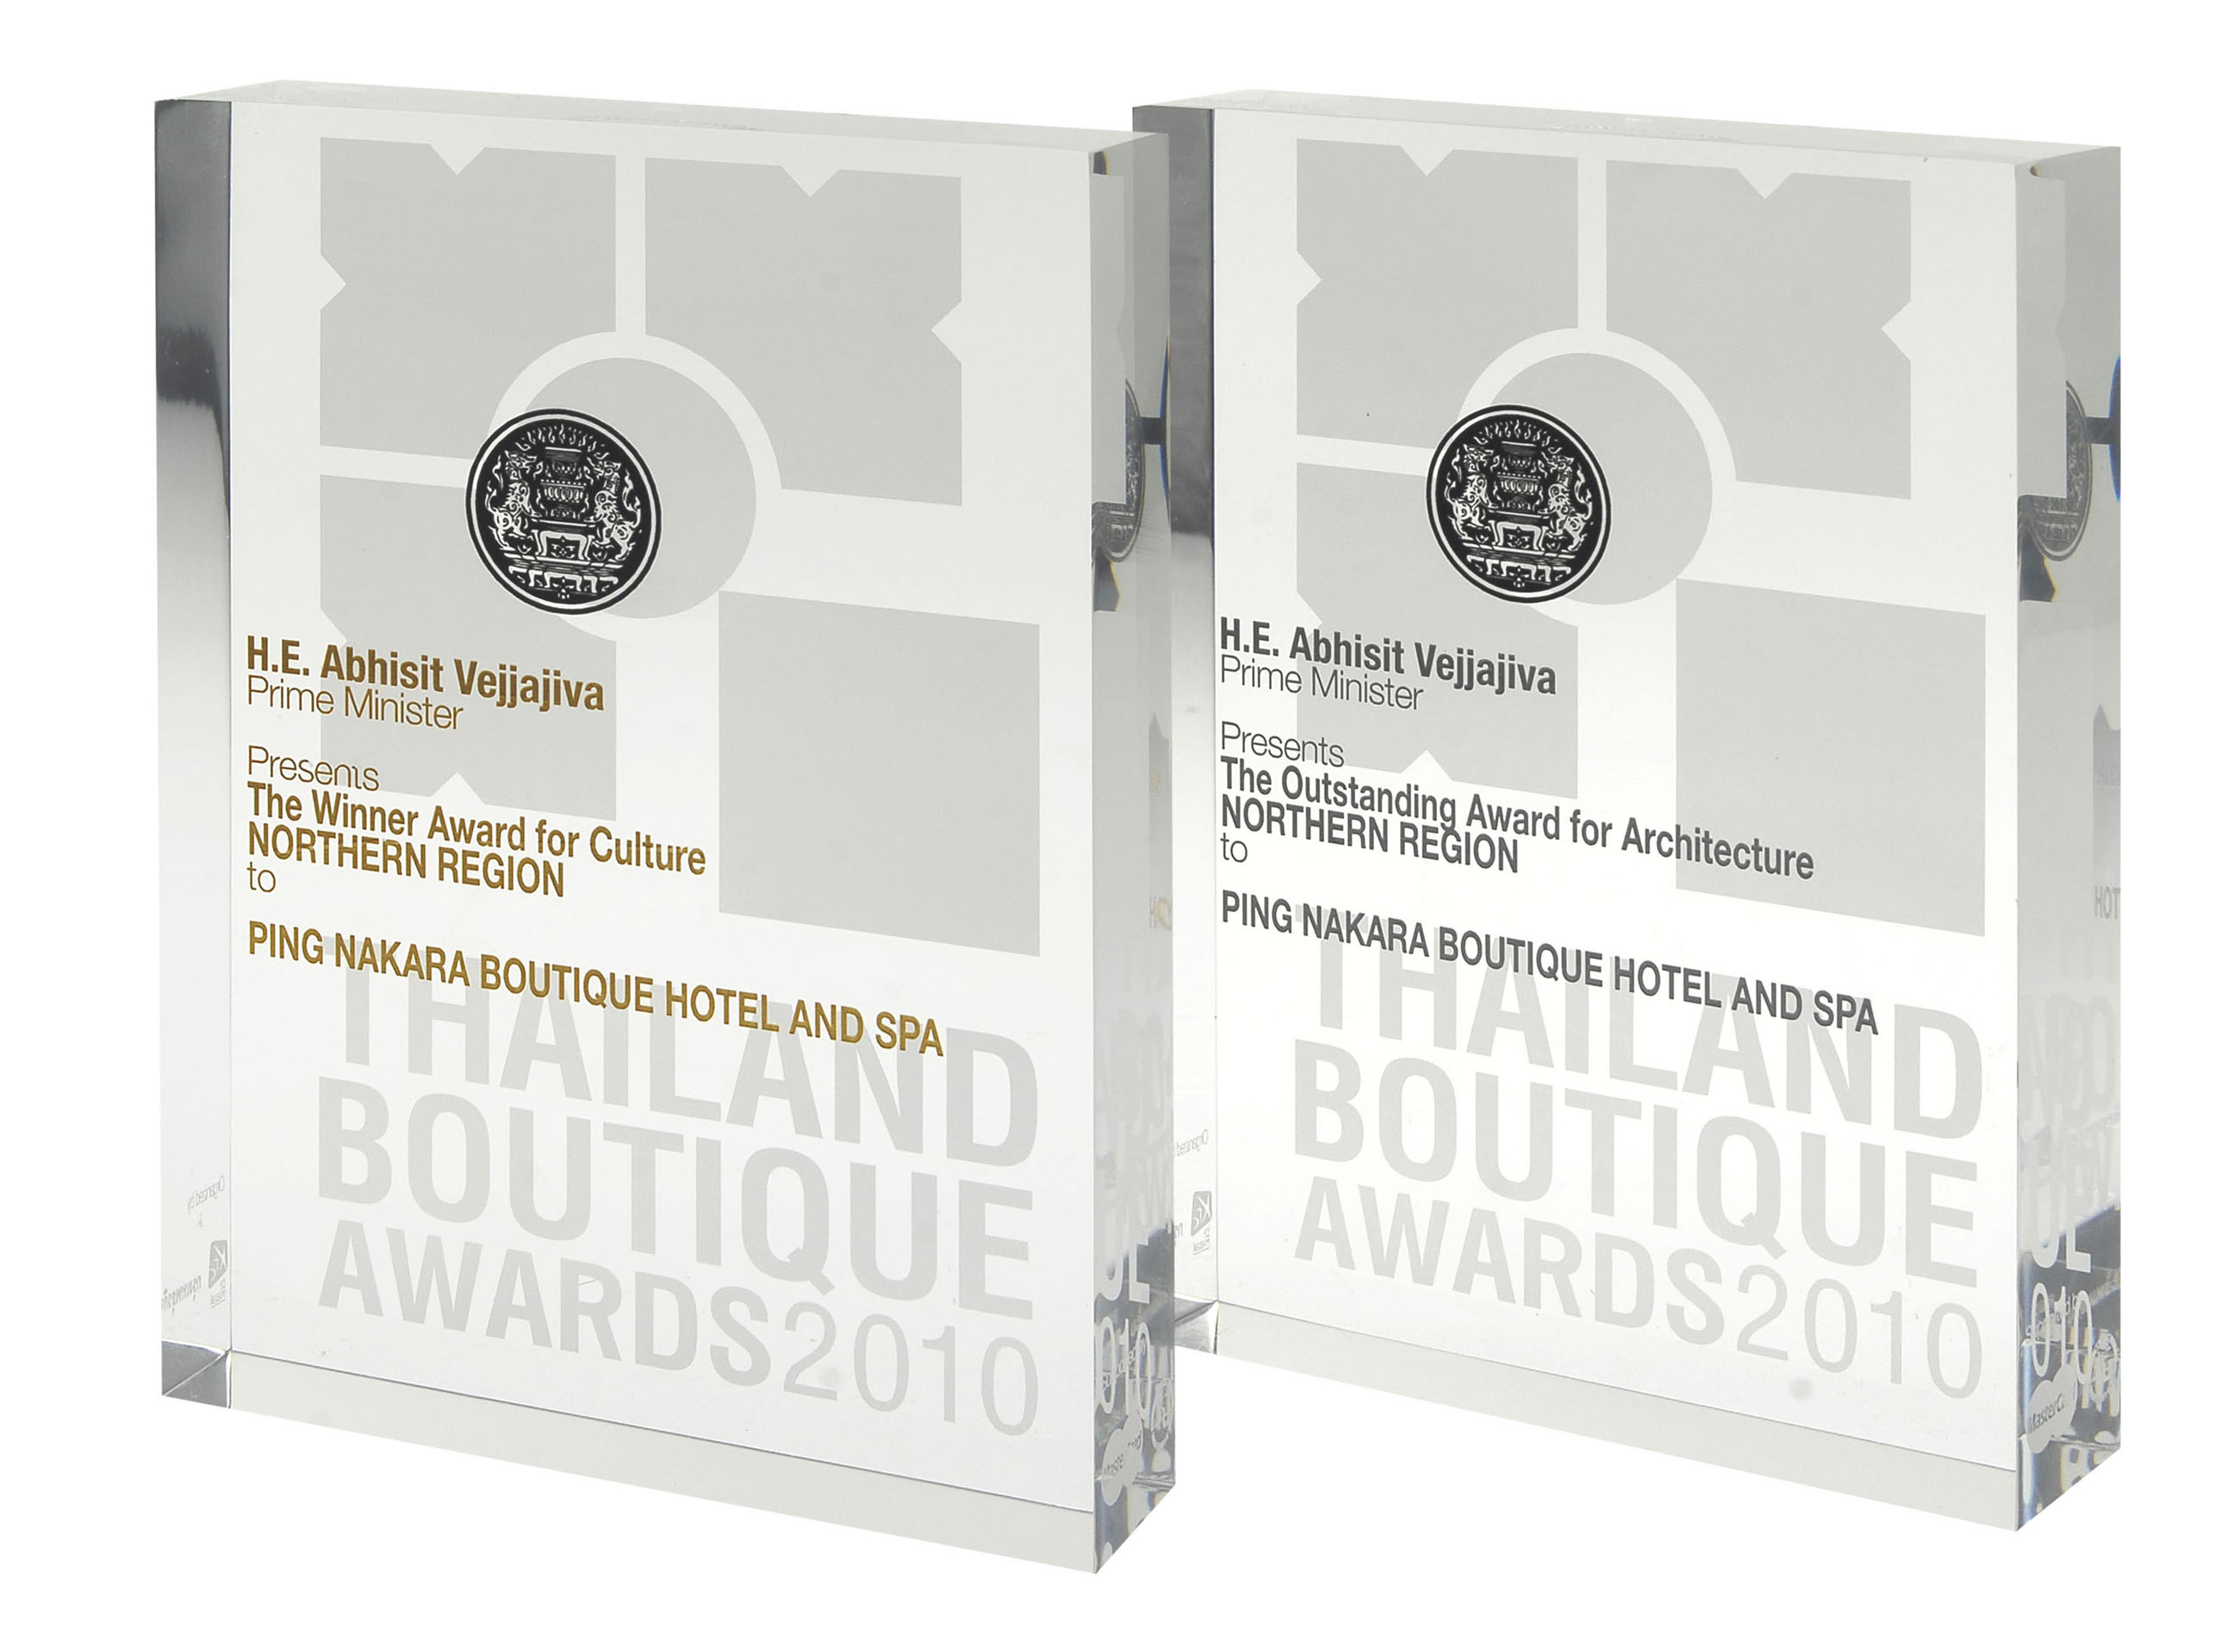 2010 THAILAND BOUTIQUE AWARDS